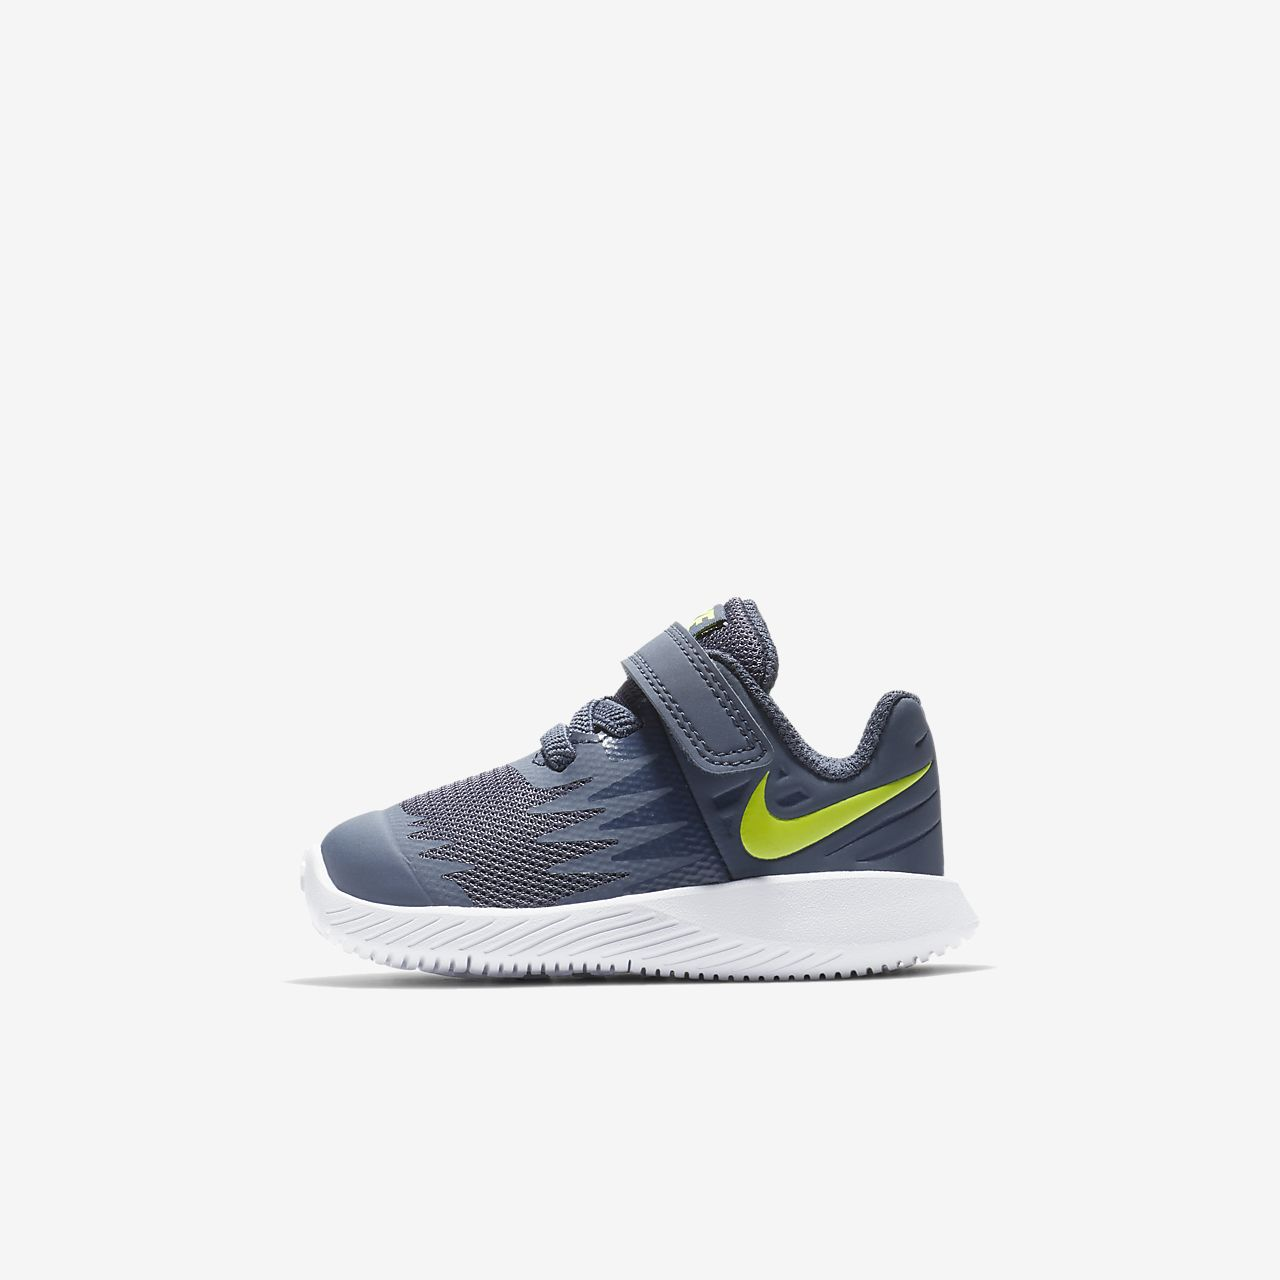 ... Nike Star Runner Infant/Toddler Shoe